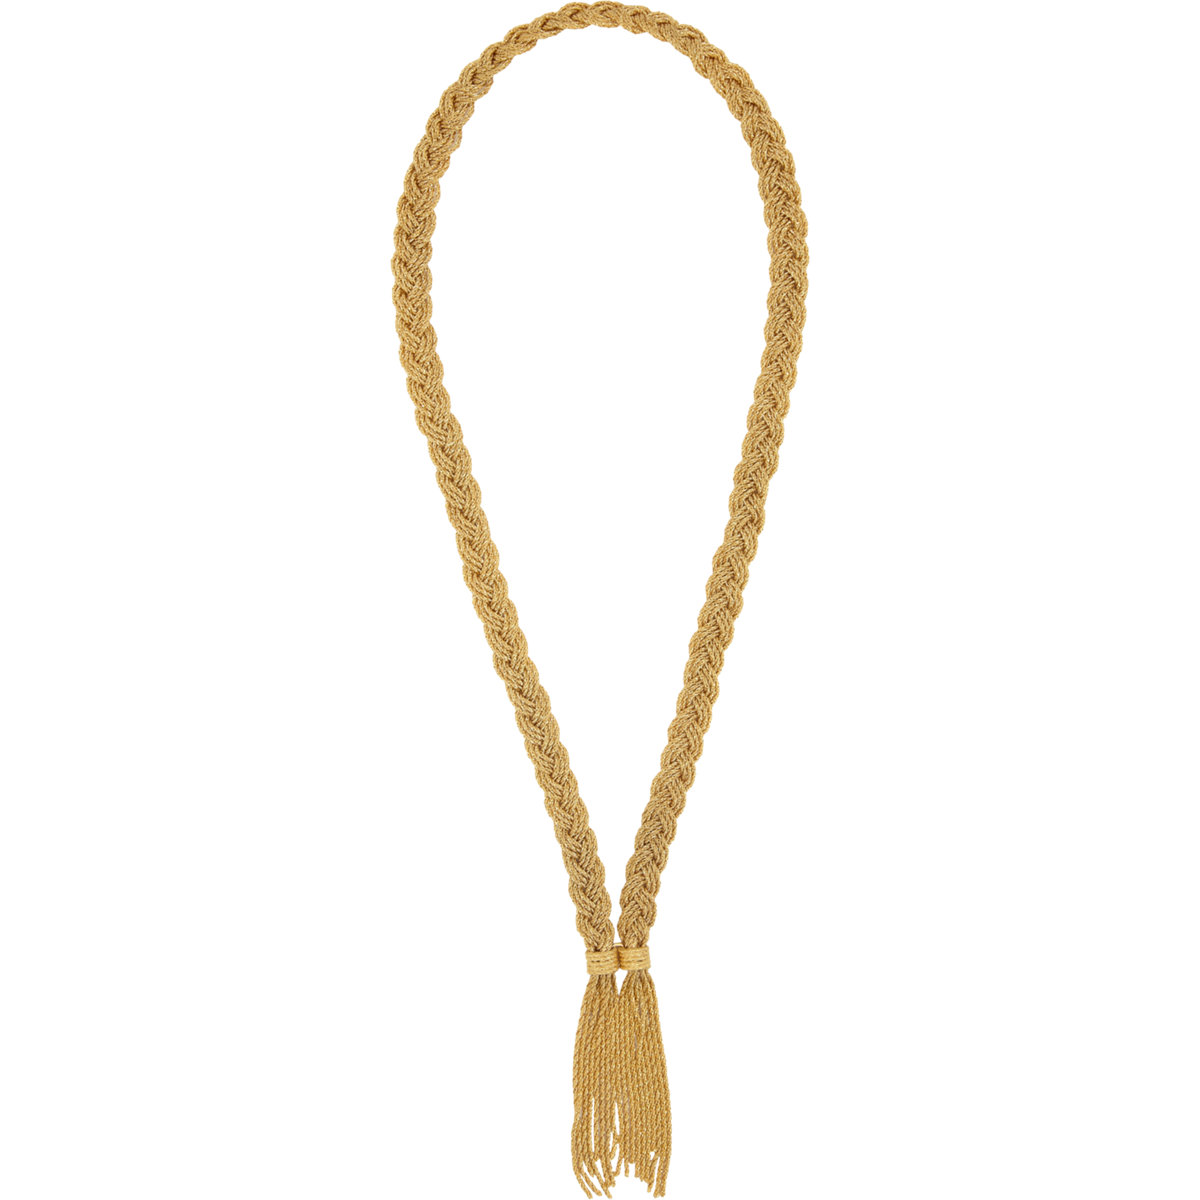 Aurélie Bidermann Gold Miki Necklace at Barneys.com